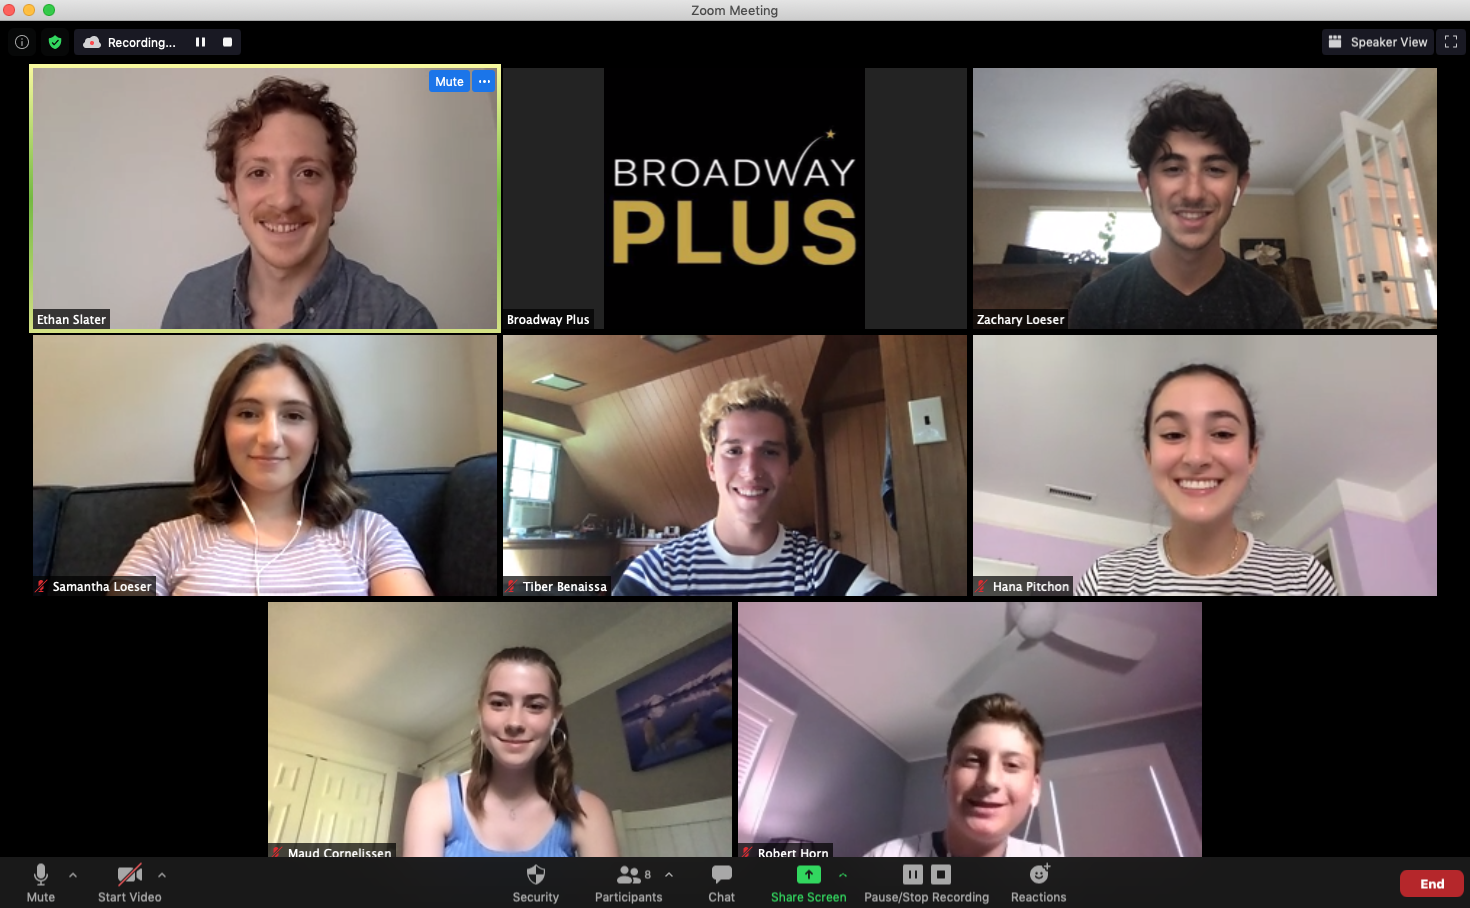 A video chat screen with the logo and pictures of a Broadway star and kids all in a chat